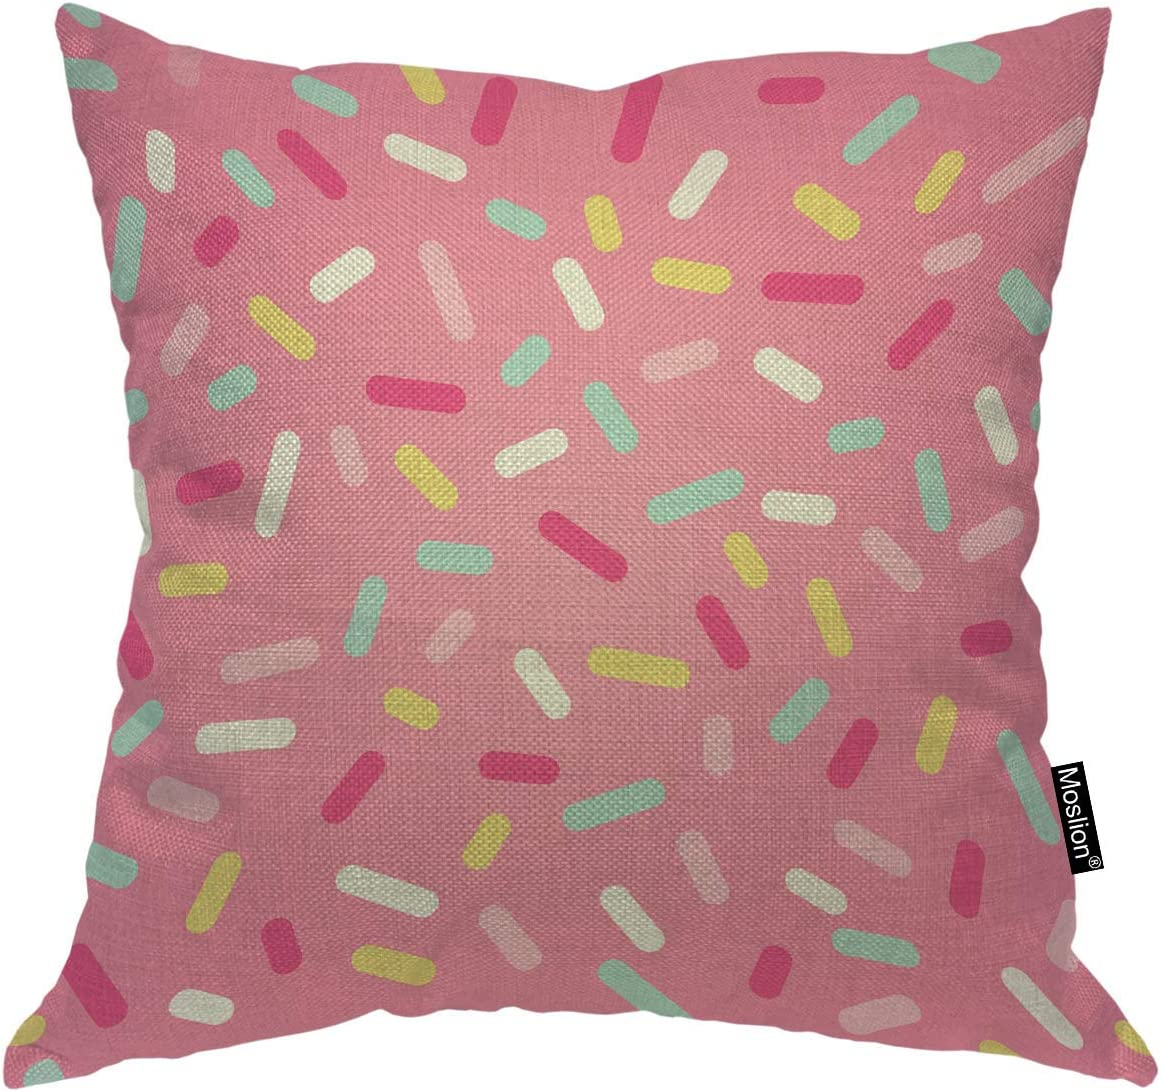 Moslion Sprinkle Donut Throw Pillow Cover Colorful Sweet Cute Lovely Food Cupcake Dessert Square Pillow Case Cushion Cover for Home Car Decorative Cotton Linen 18x18 Inch